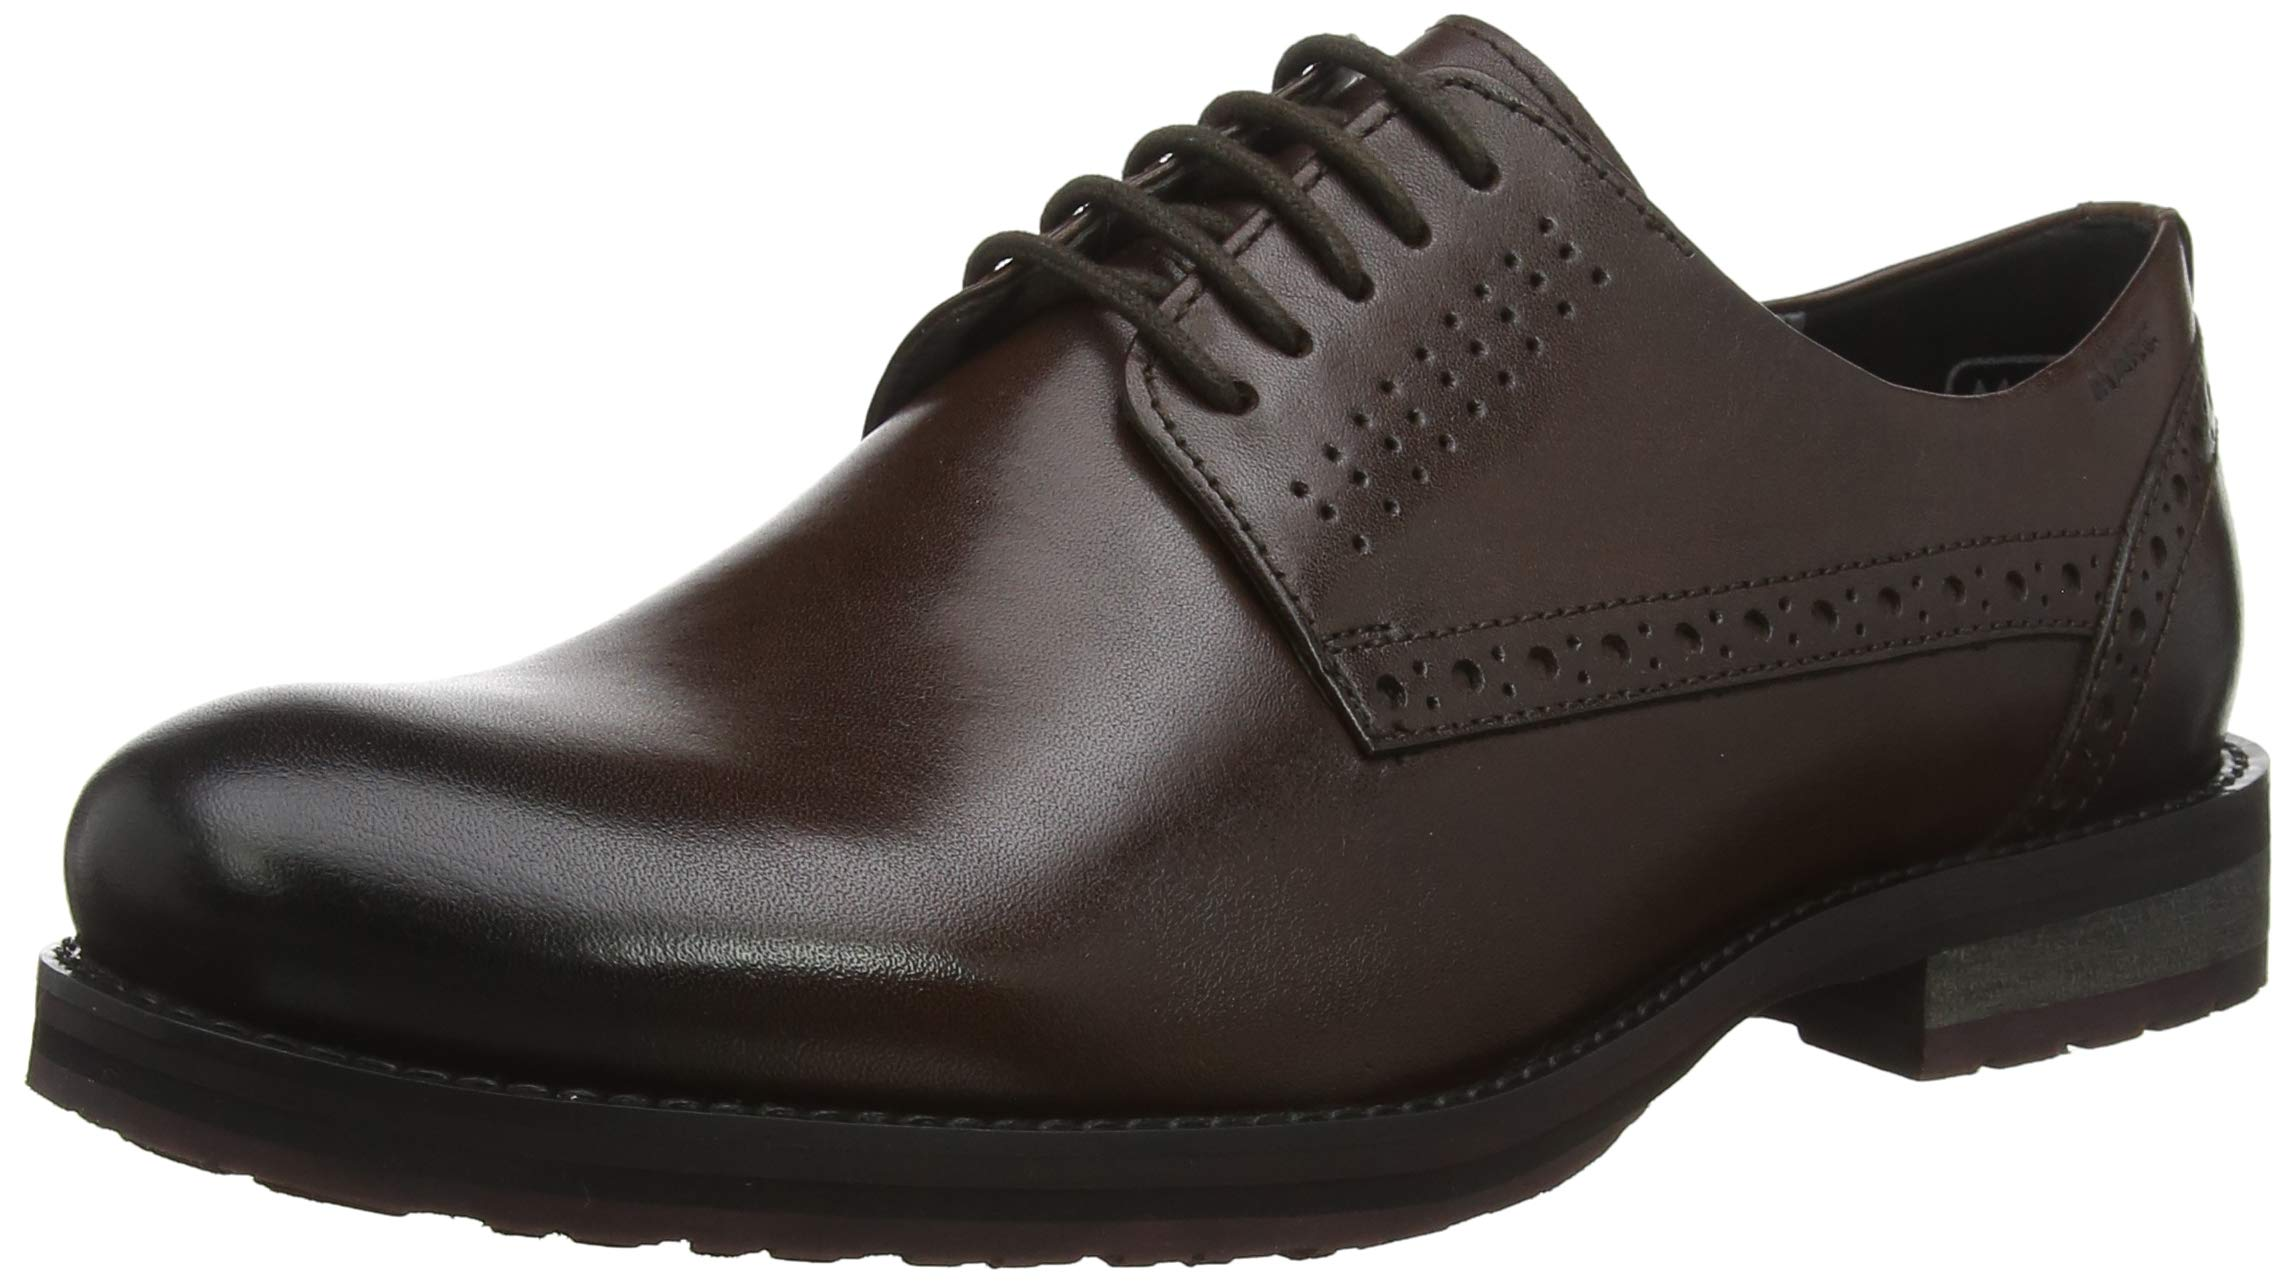 Marc Jacobs moro T 0094240 FerrisBrogues HommeBrauncow Eu Leather d By dxBhrtsQC